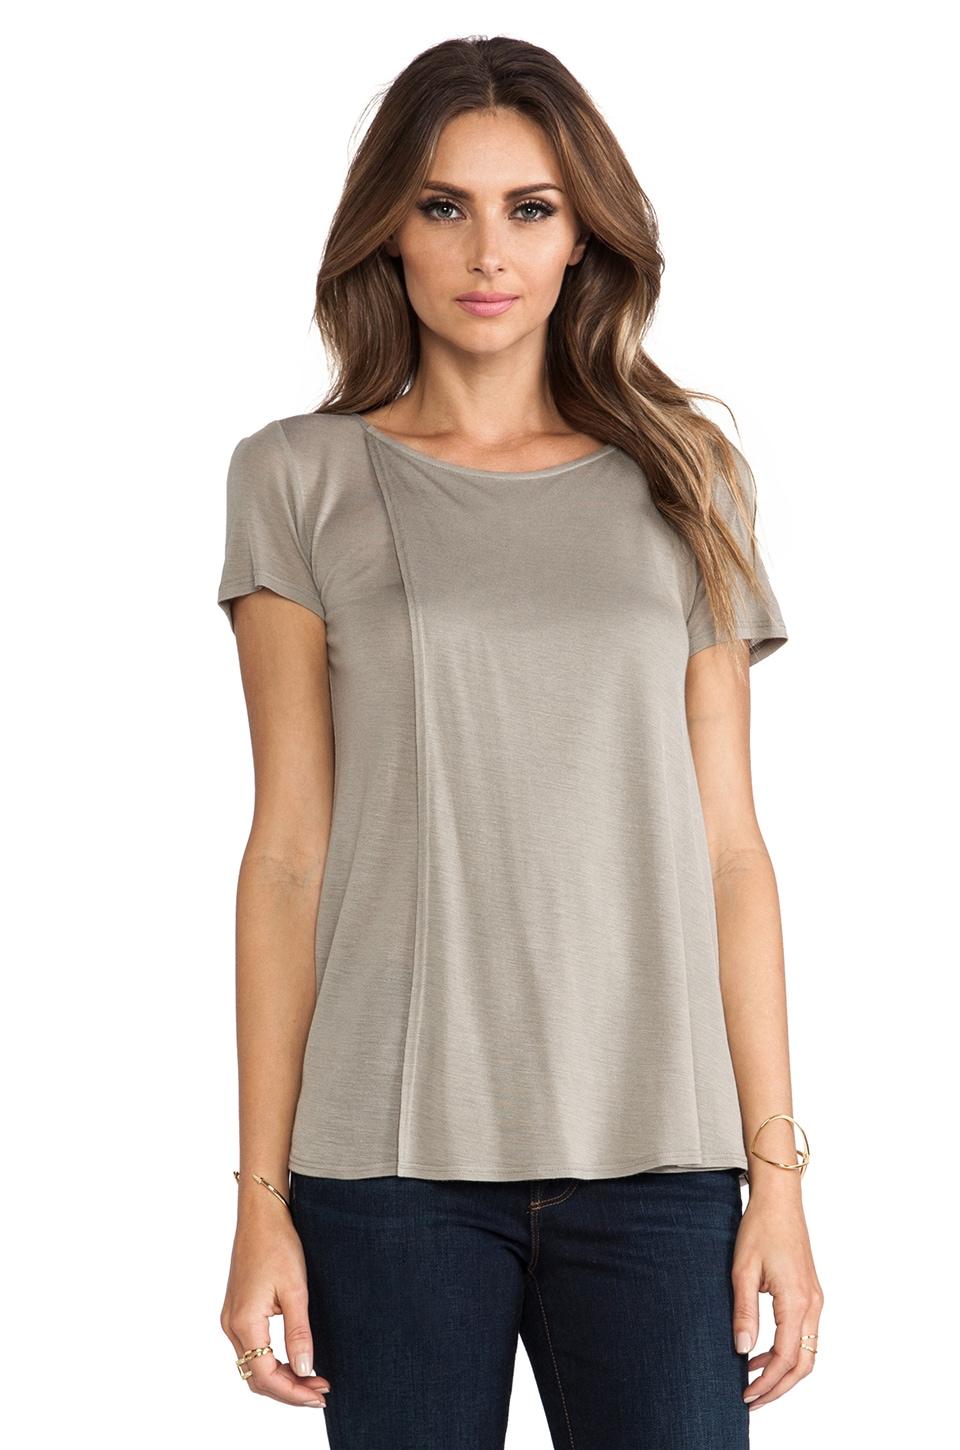 Theory Newnan Tee in Light Sage